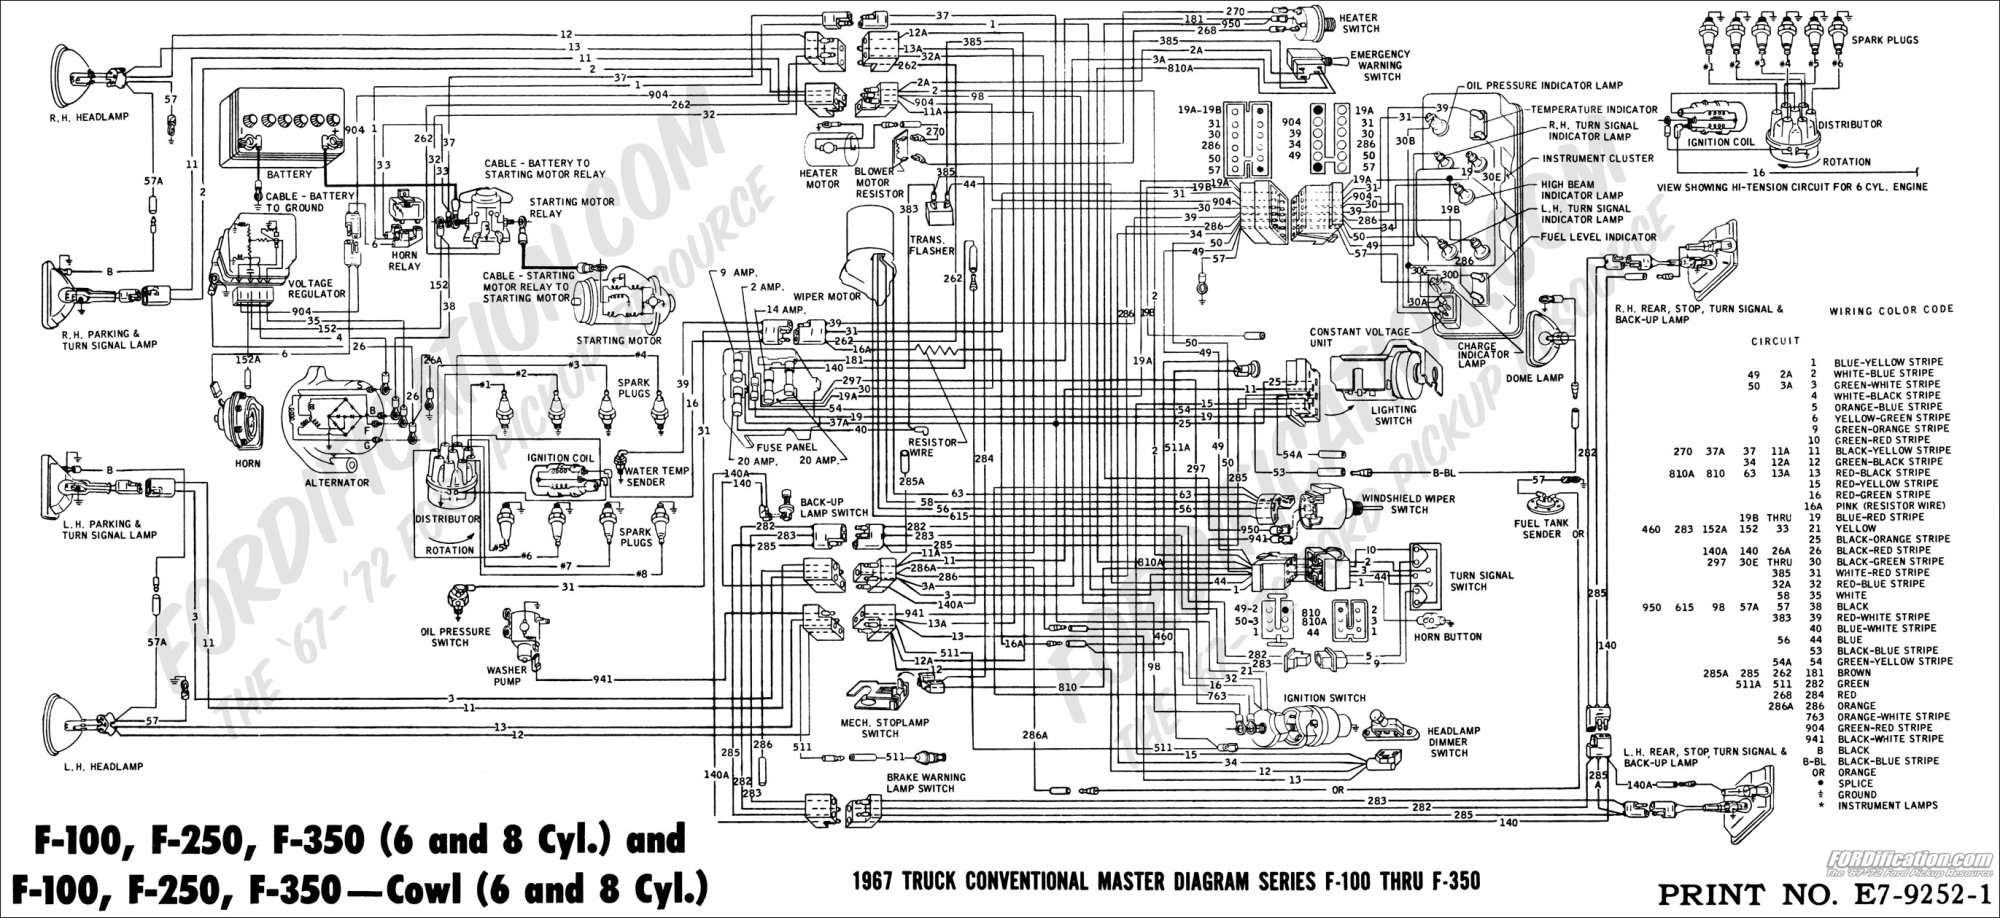 hight resolution of 2006 ford lcf wiring diagram wiring diagram todays2006 ford truck wiring diagram completed wiring diagrams ford